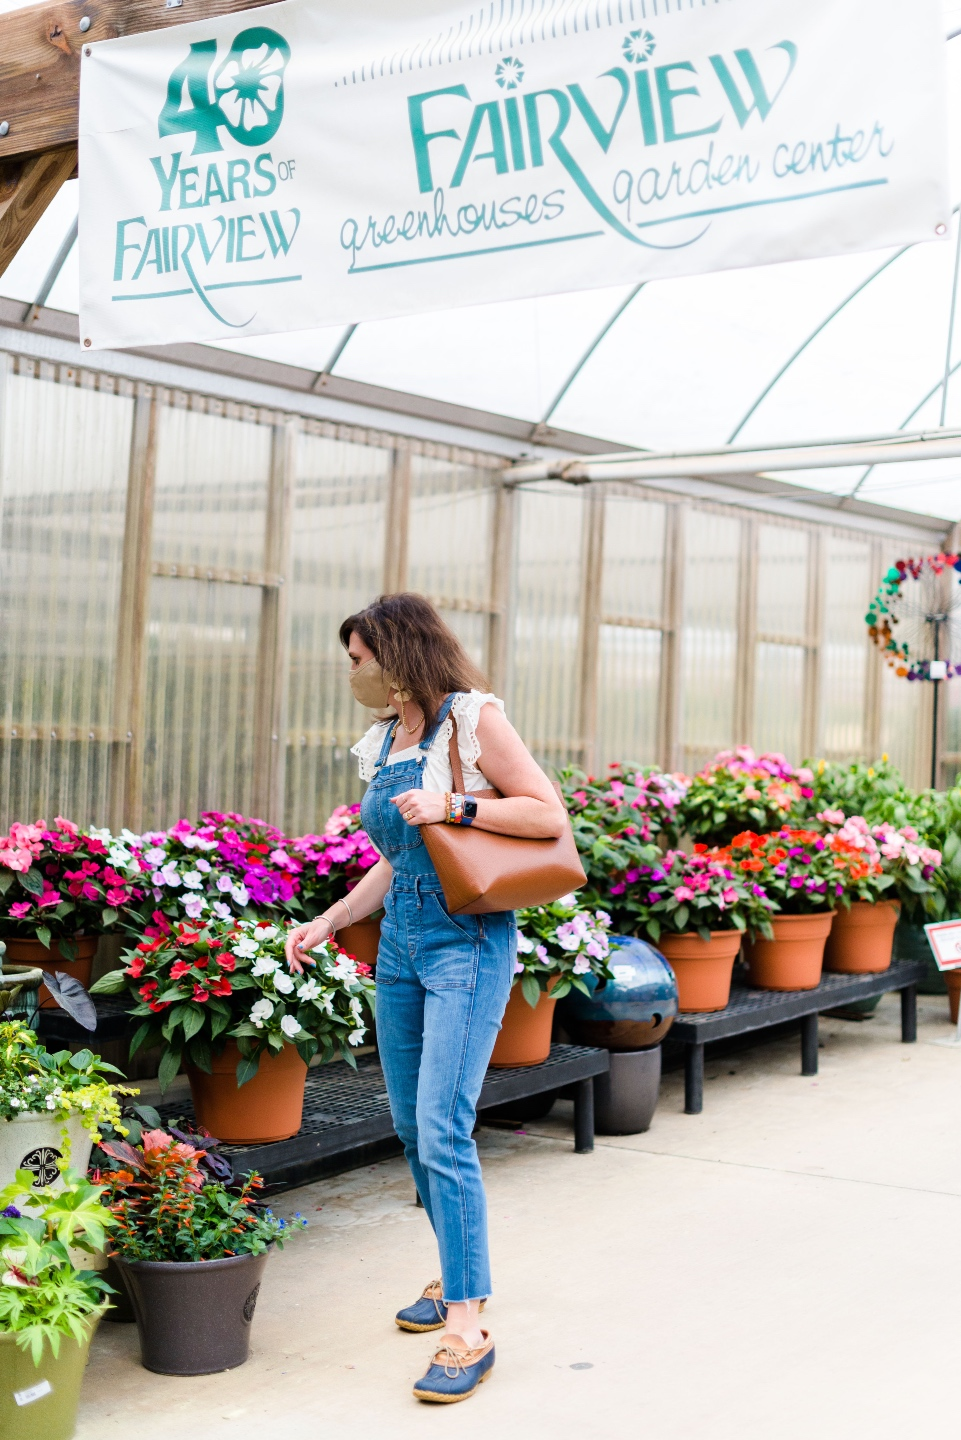 5 Spring Planting Tips with Fairview Garden Center - I'm Fixin' To - @imfixintoblog |Best Plants to Plant in Spring by popular NC lifestyle blog: image of a woman looking at potted plants at the Fairview Garden Center.